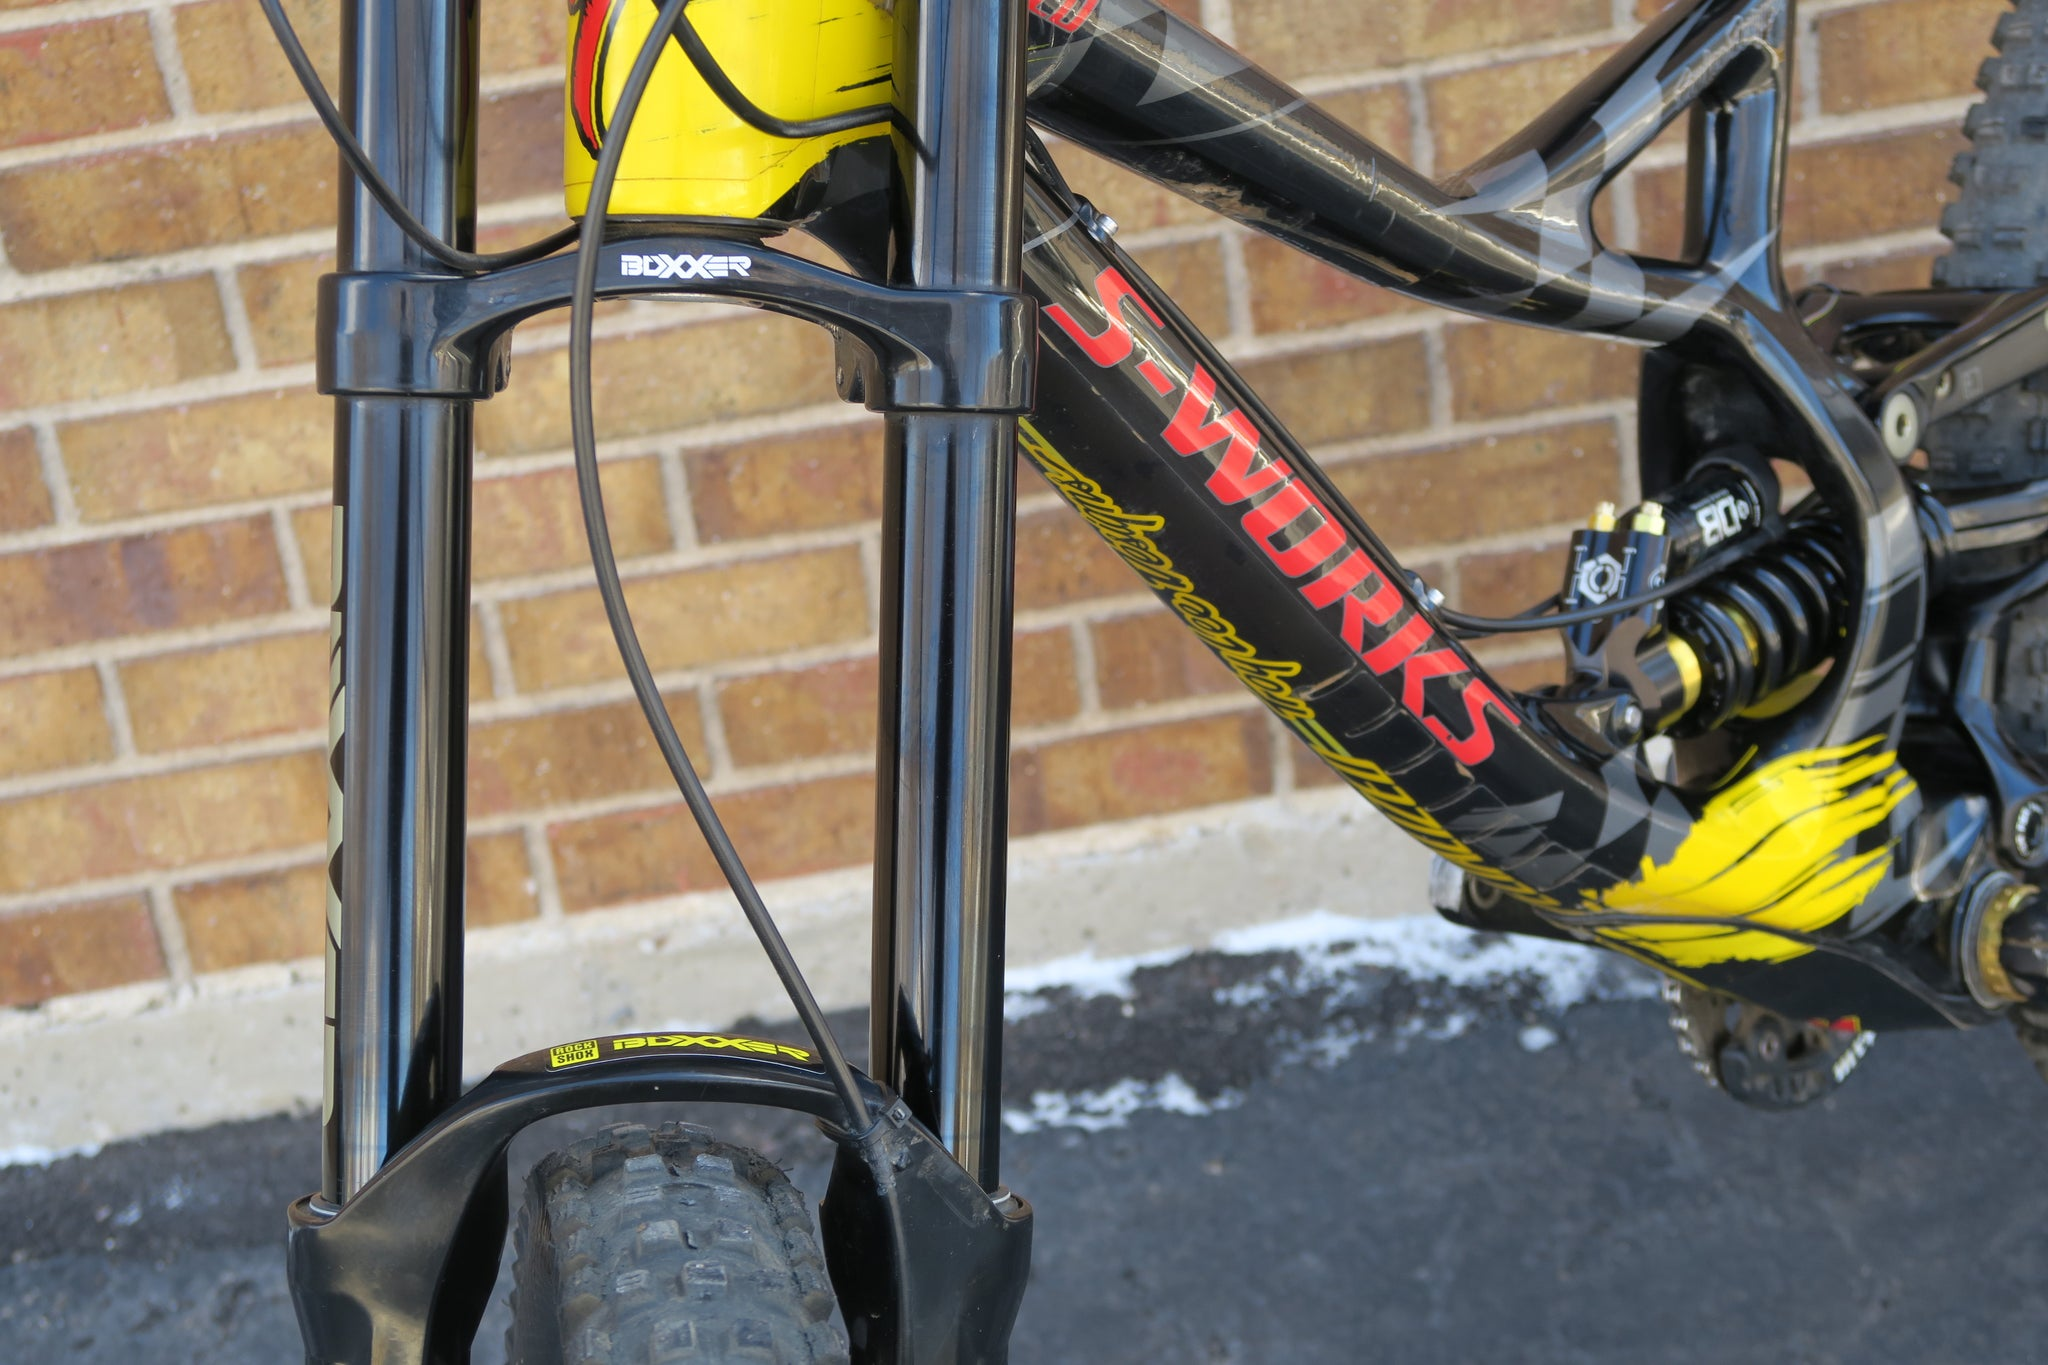 2013 S-WORKS DEMO 8 CARBON TROY LEE DESIGNS 26""